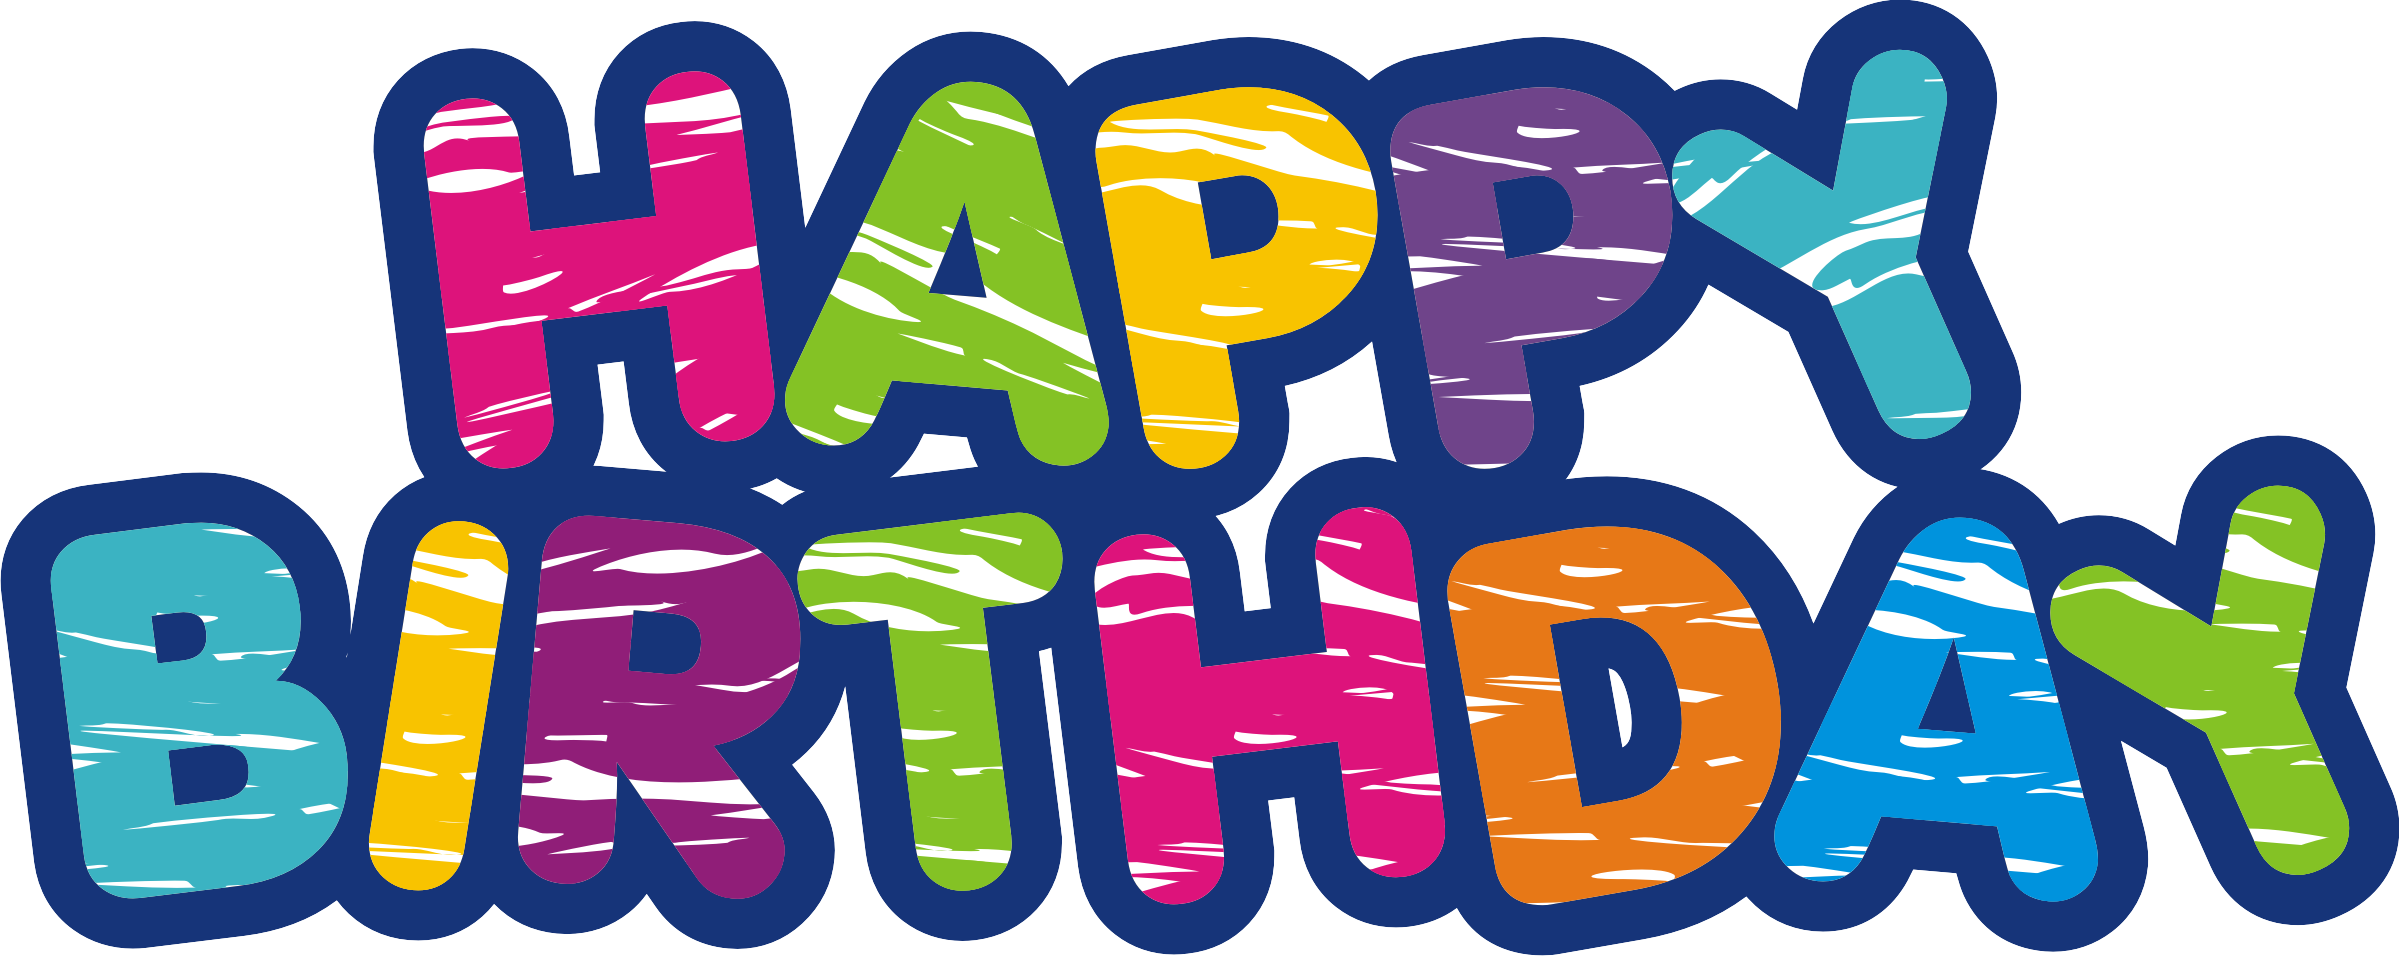 Picture web icons . Happy birthday png transparent background picture free library